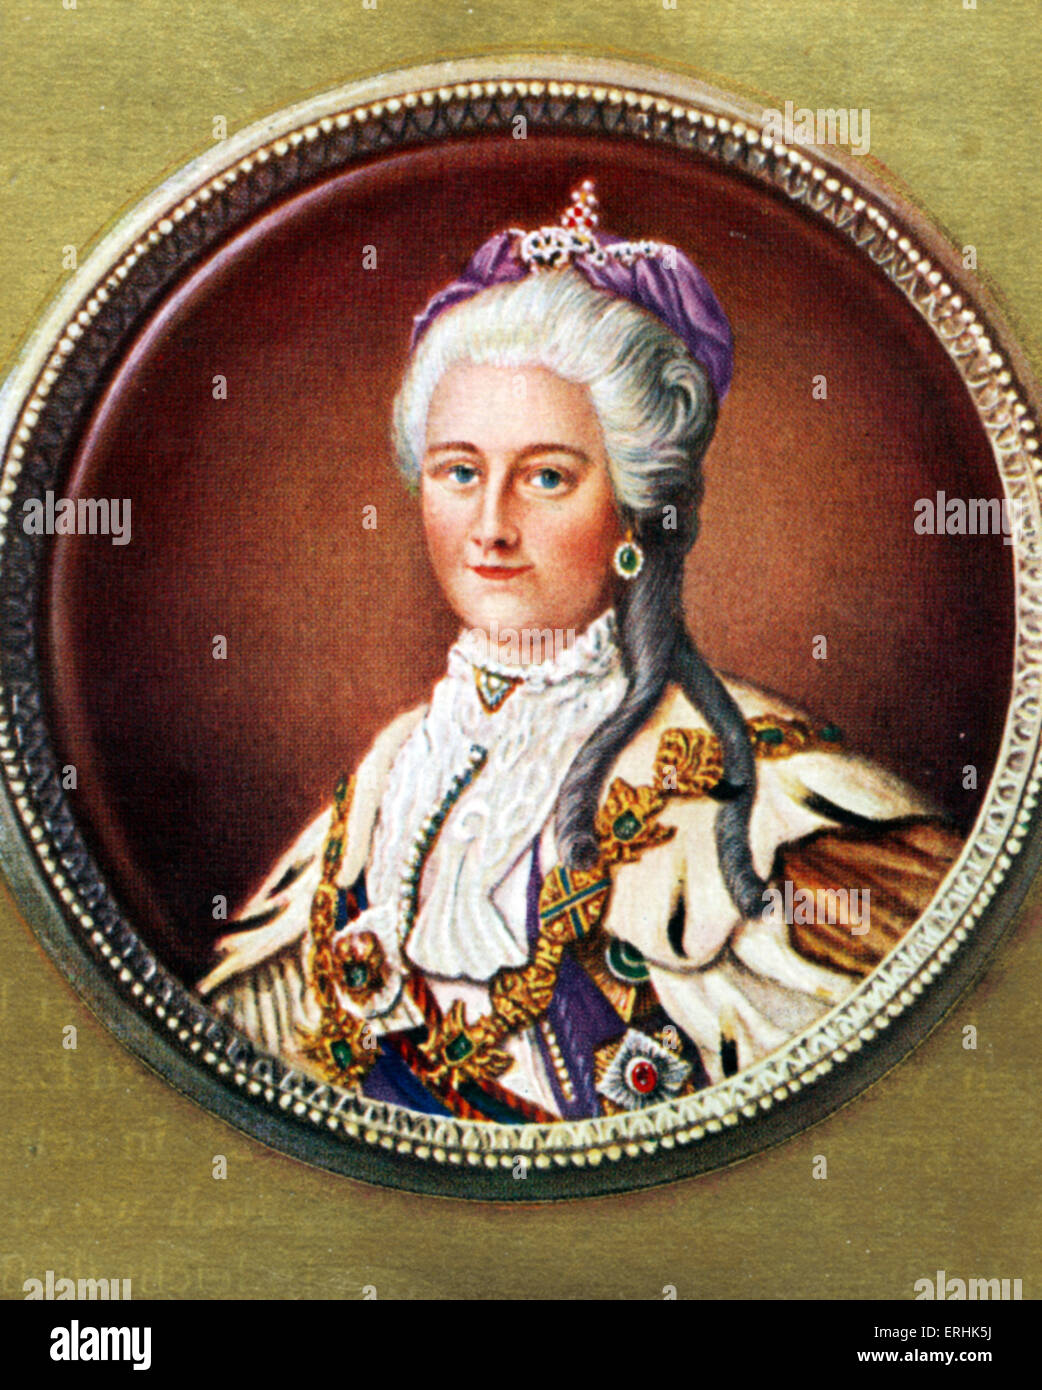 Catherine II. Portrait of the Russian Empress. 2 May 1729 - 17 November 1796 - Stock Image